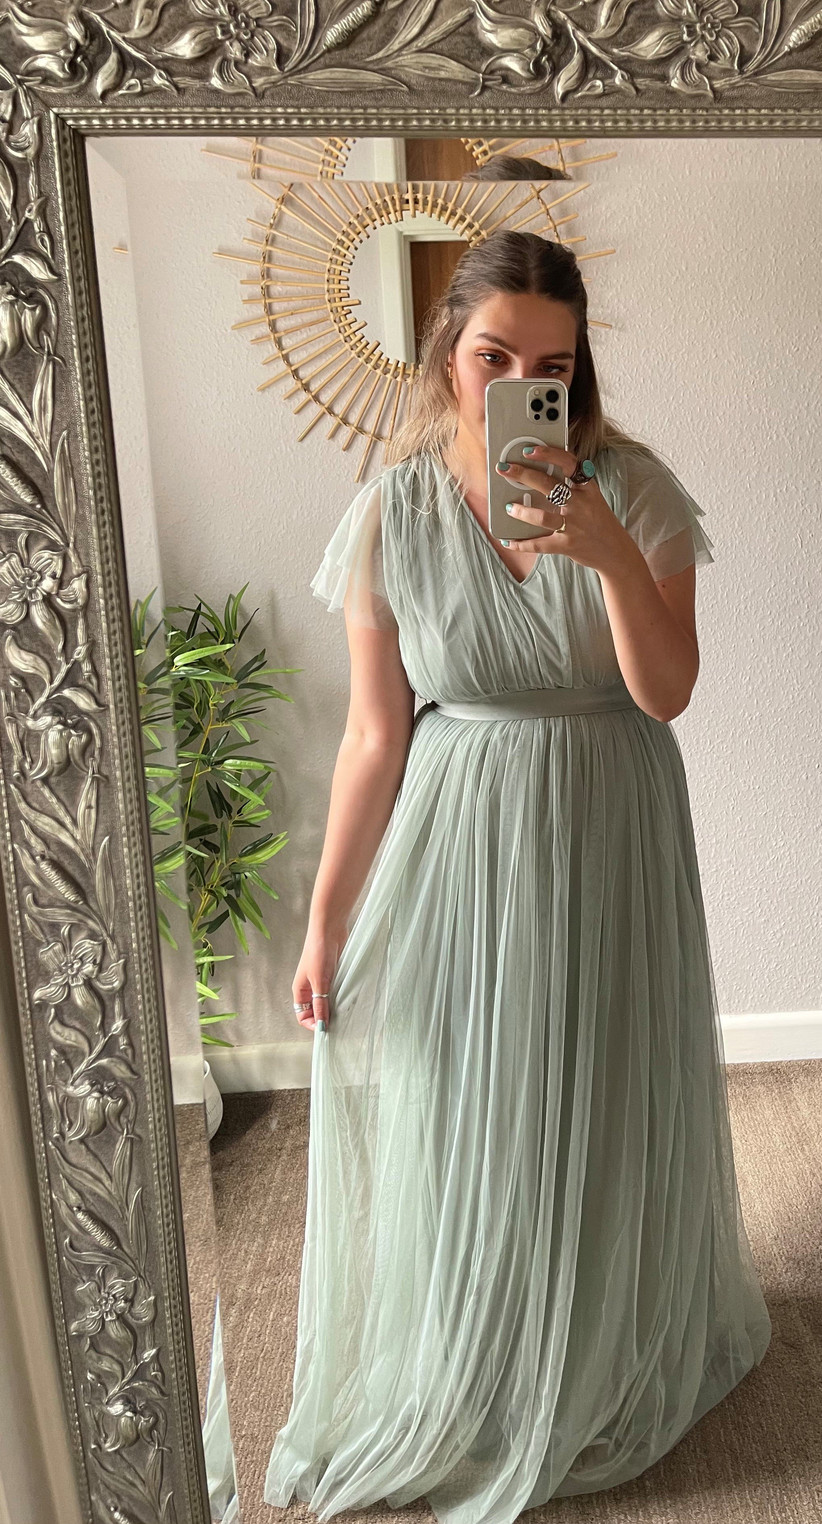 Model wearing a green tulle bridesmaid dress